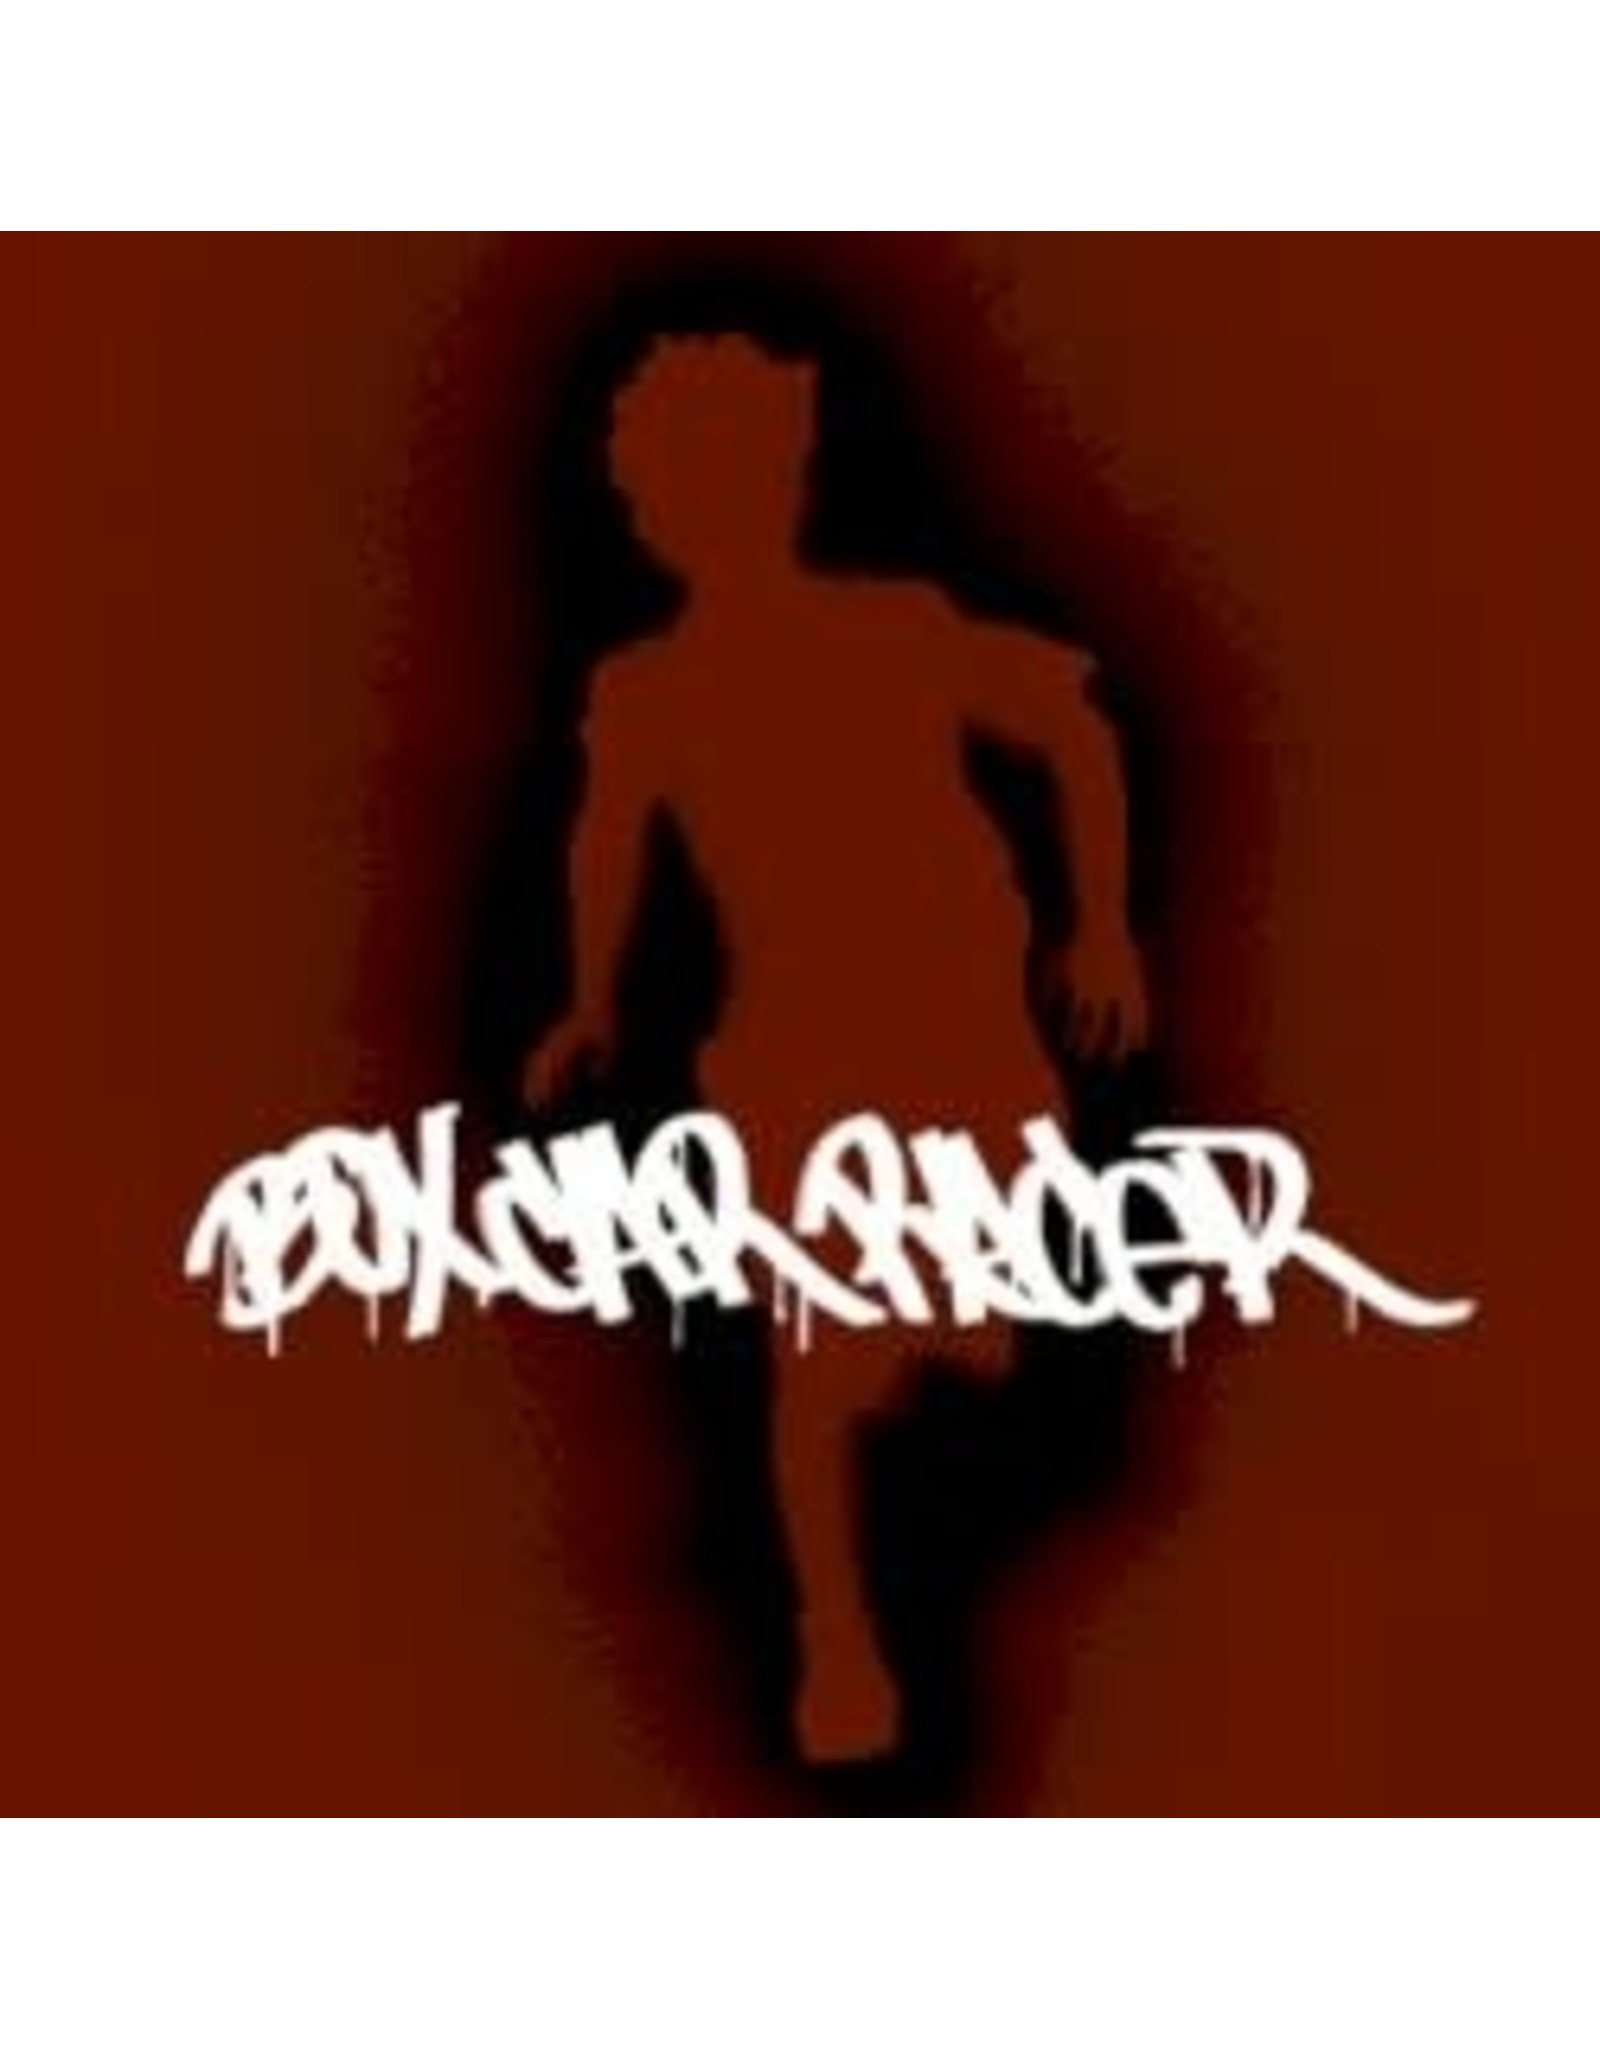 Box Car Racer - ST LP